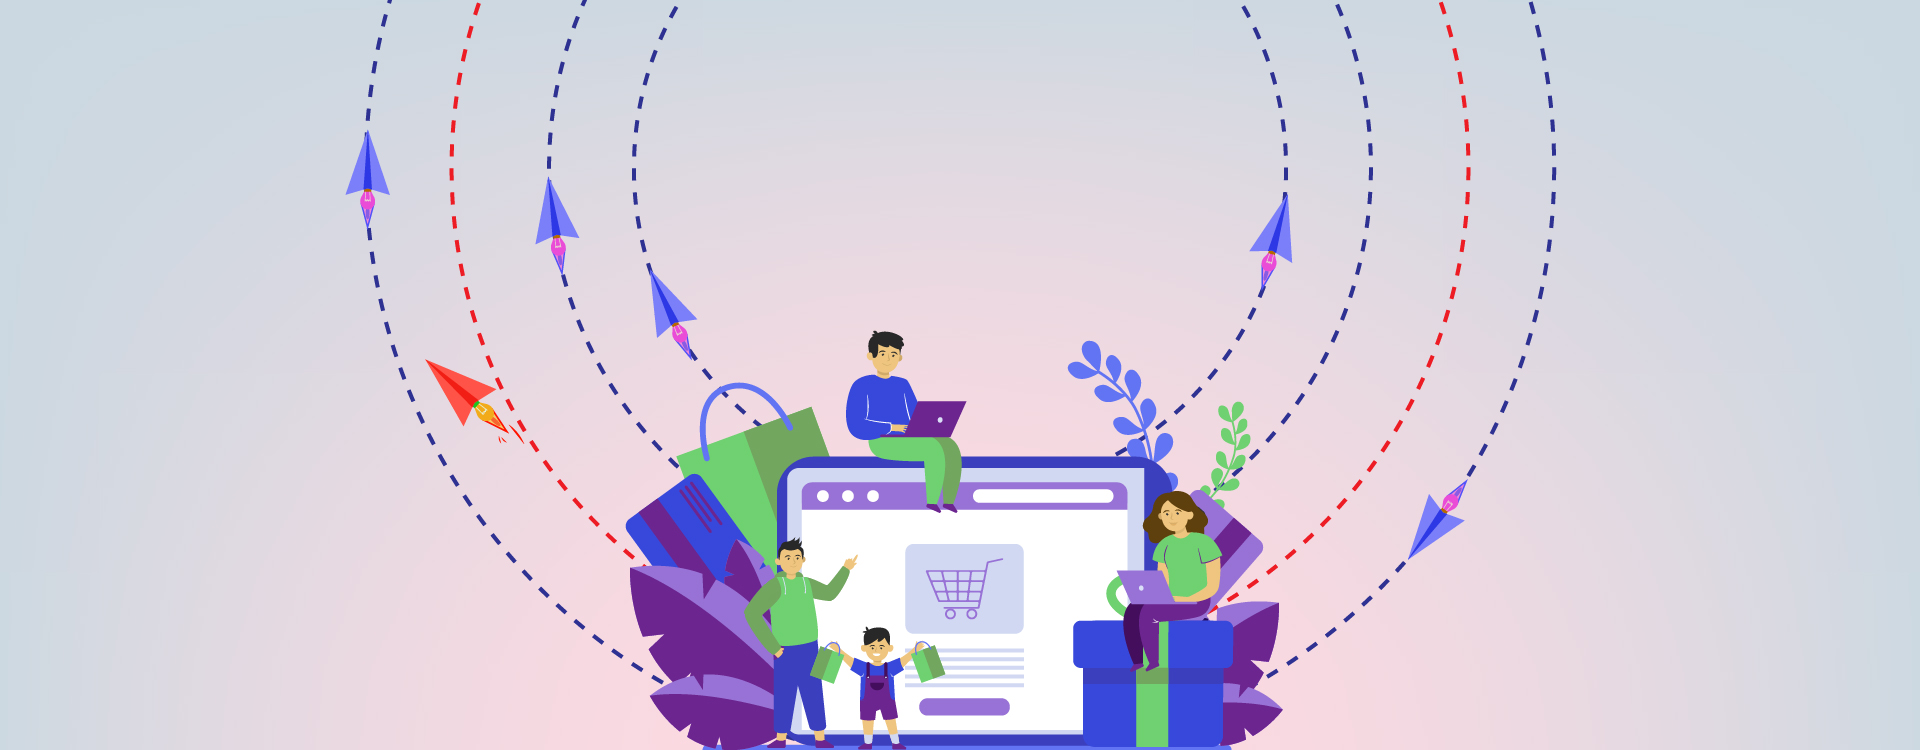 Disruptions in E-commerce will be driven by changes in consumer behaviour and Tech advancements.